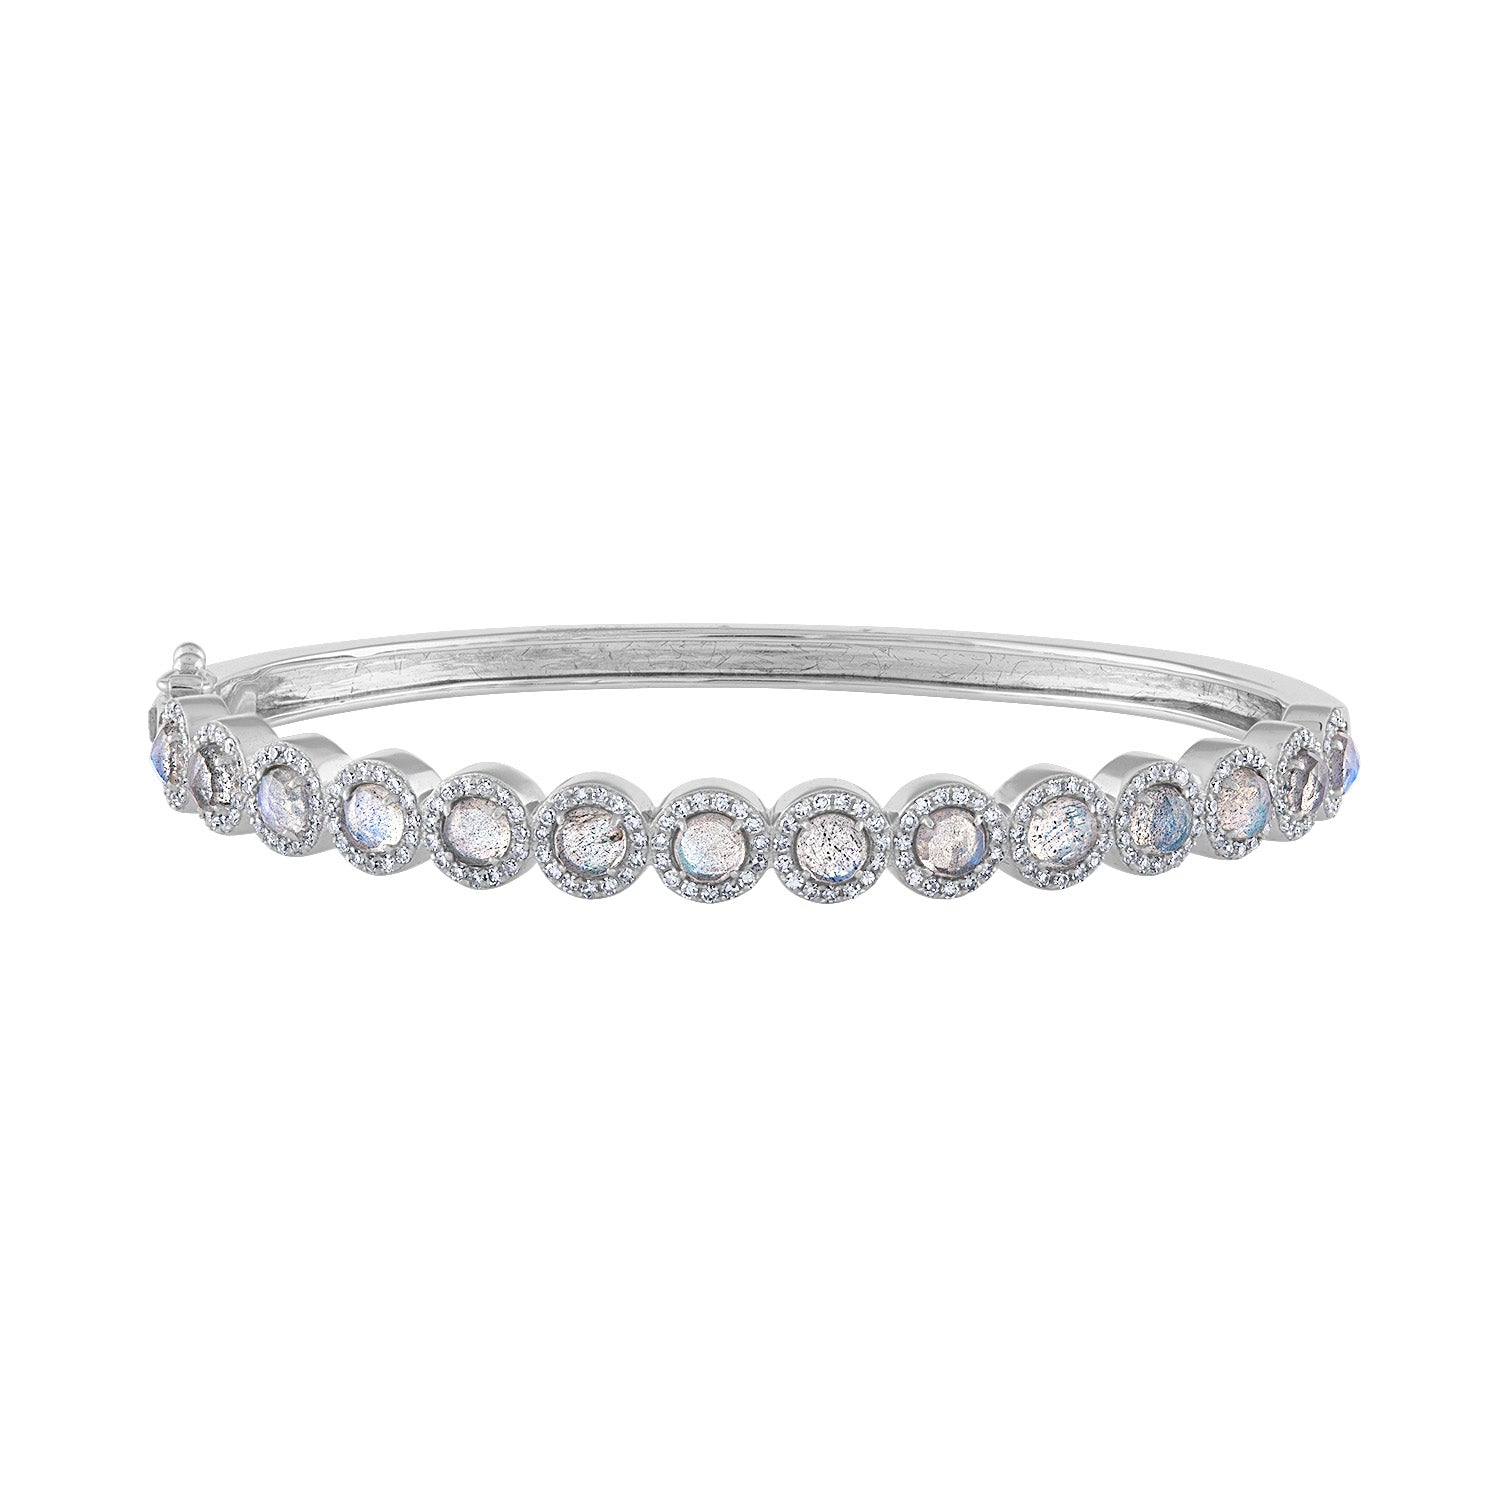 14K White Gold diamond labradorite martini bracelet